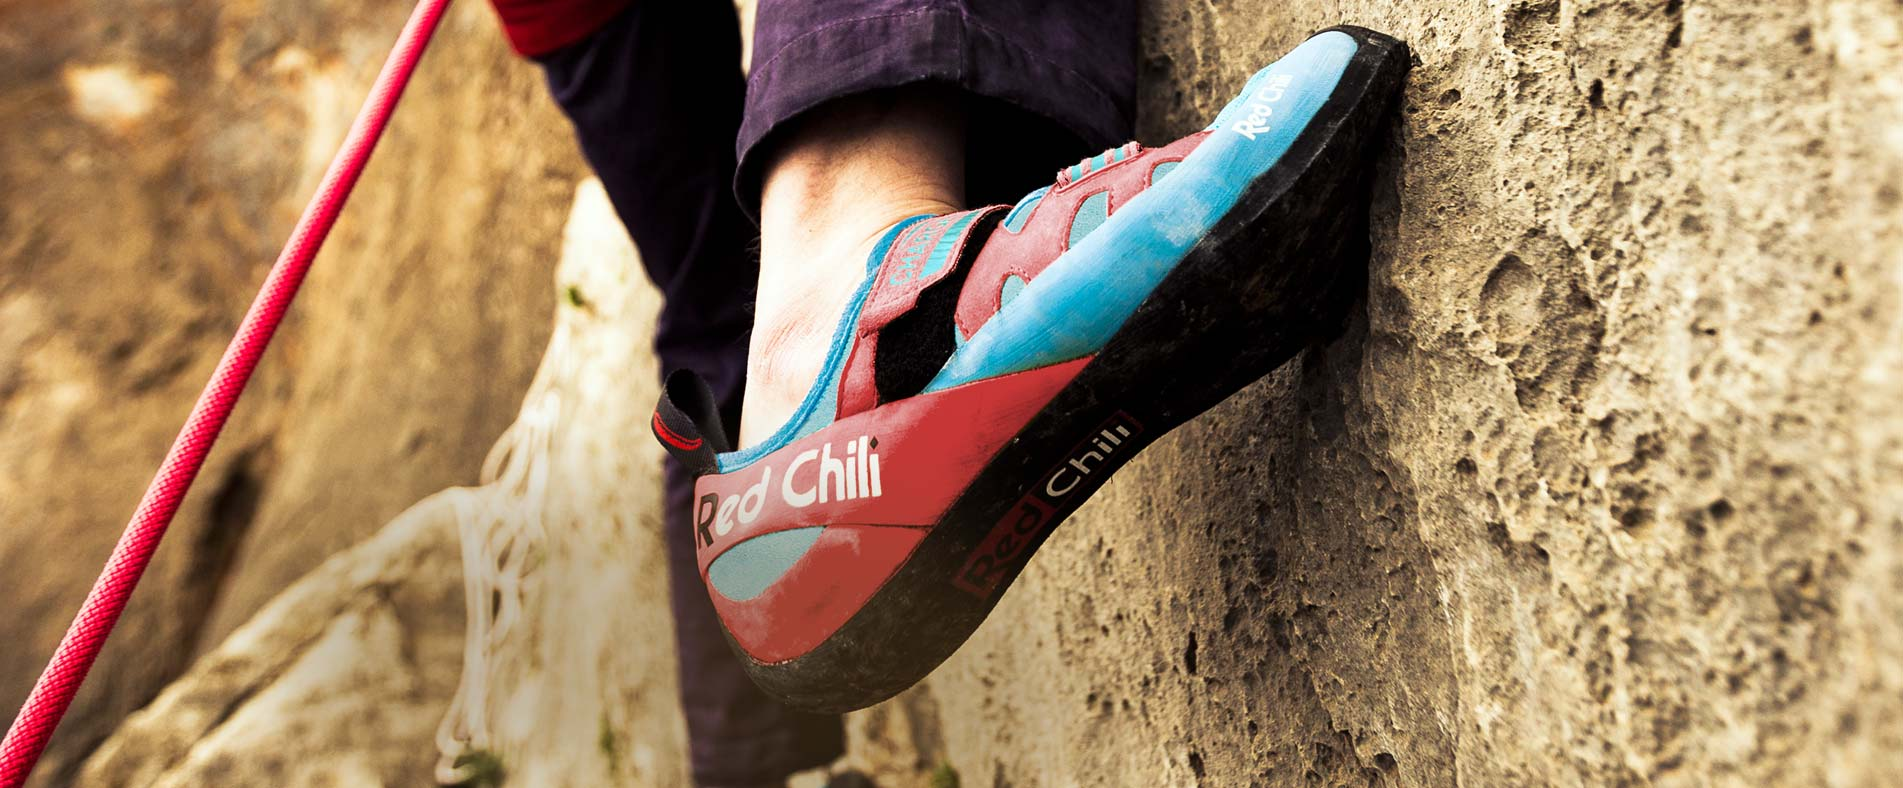 New Red Chili Climbing Shoe Collection 2018